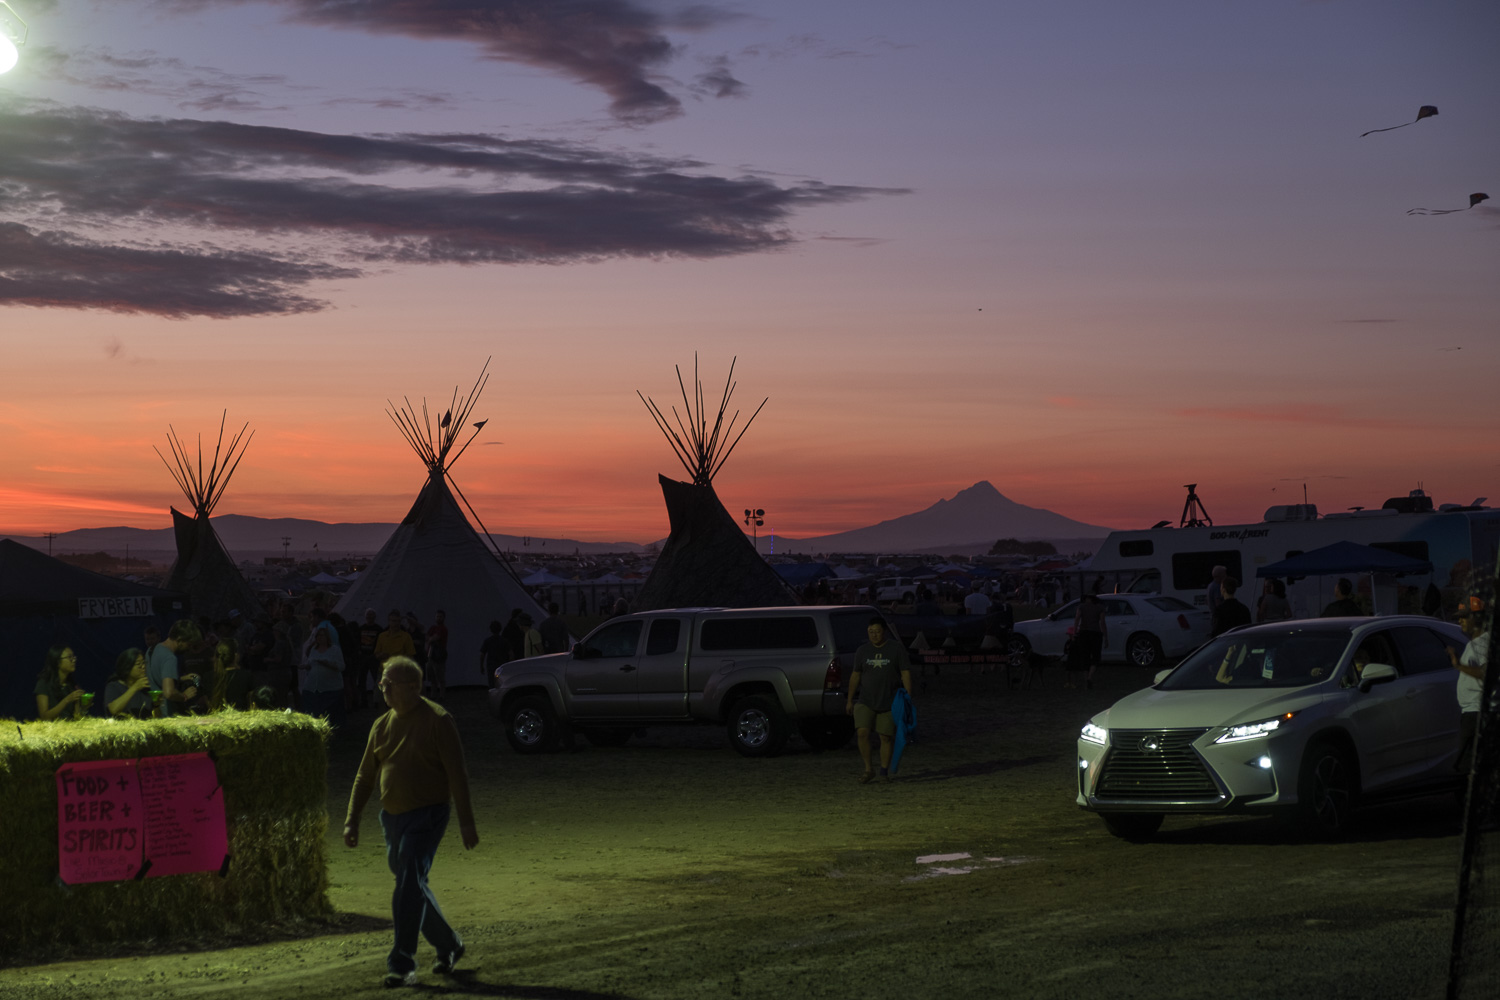 Night falls. Oregon Solarfest (Image: Paola Thomas / Seattle Refined)